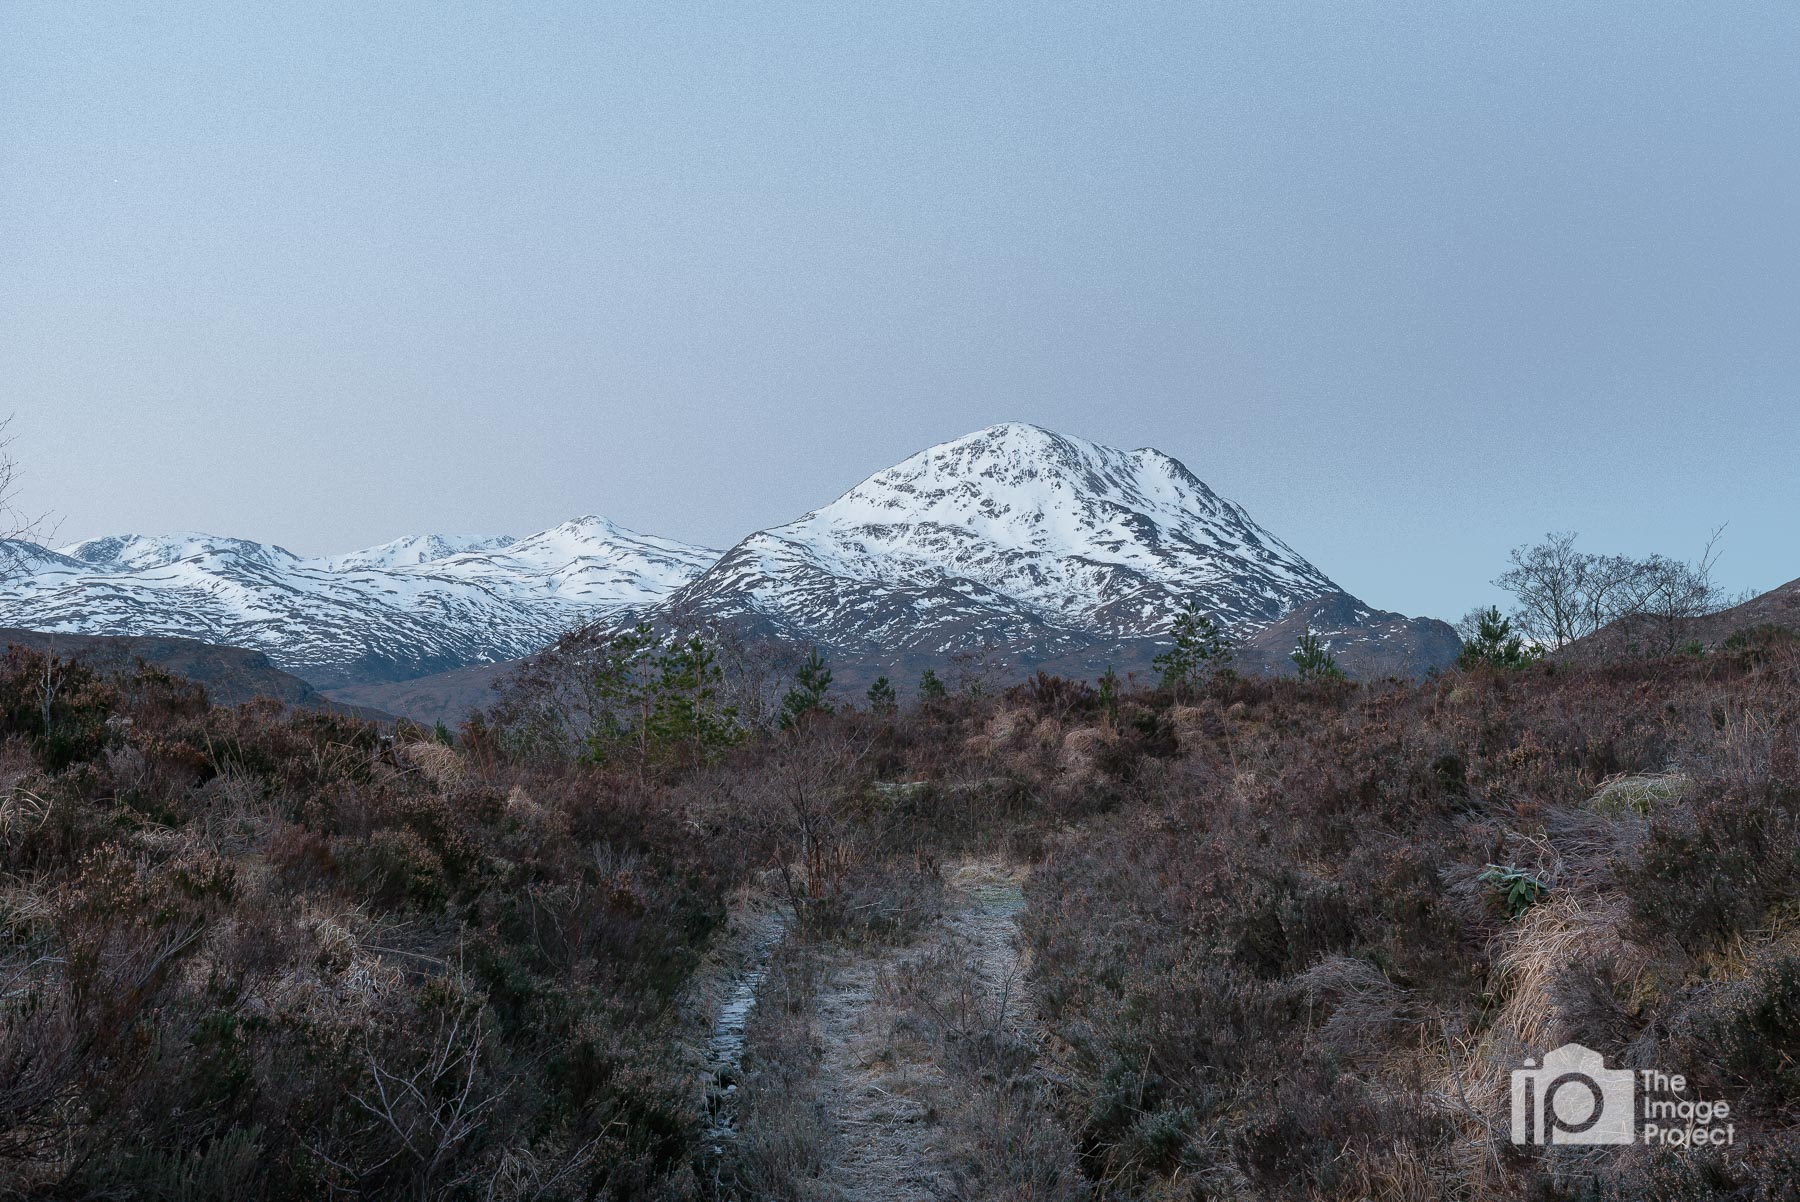 Crisp and chilly pre-dawn scene looking into a mountain range near Torridon, Feb 2018